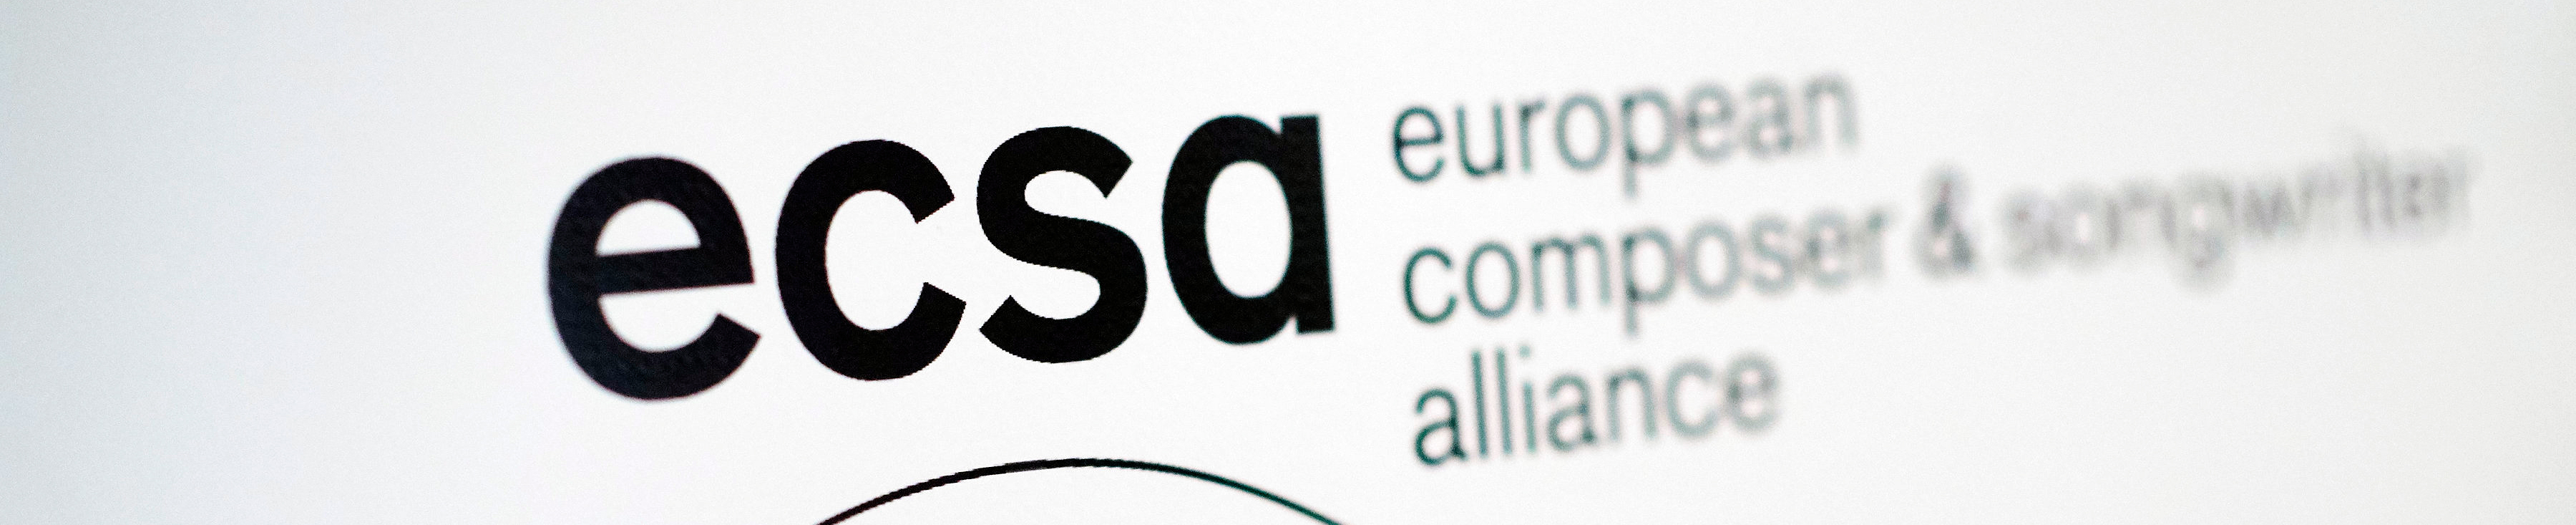 ecsa - European composer and songwriter alliance logo